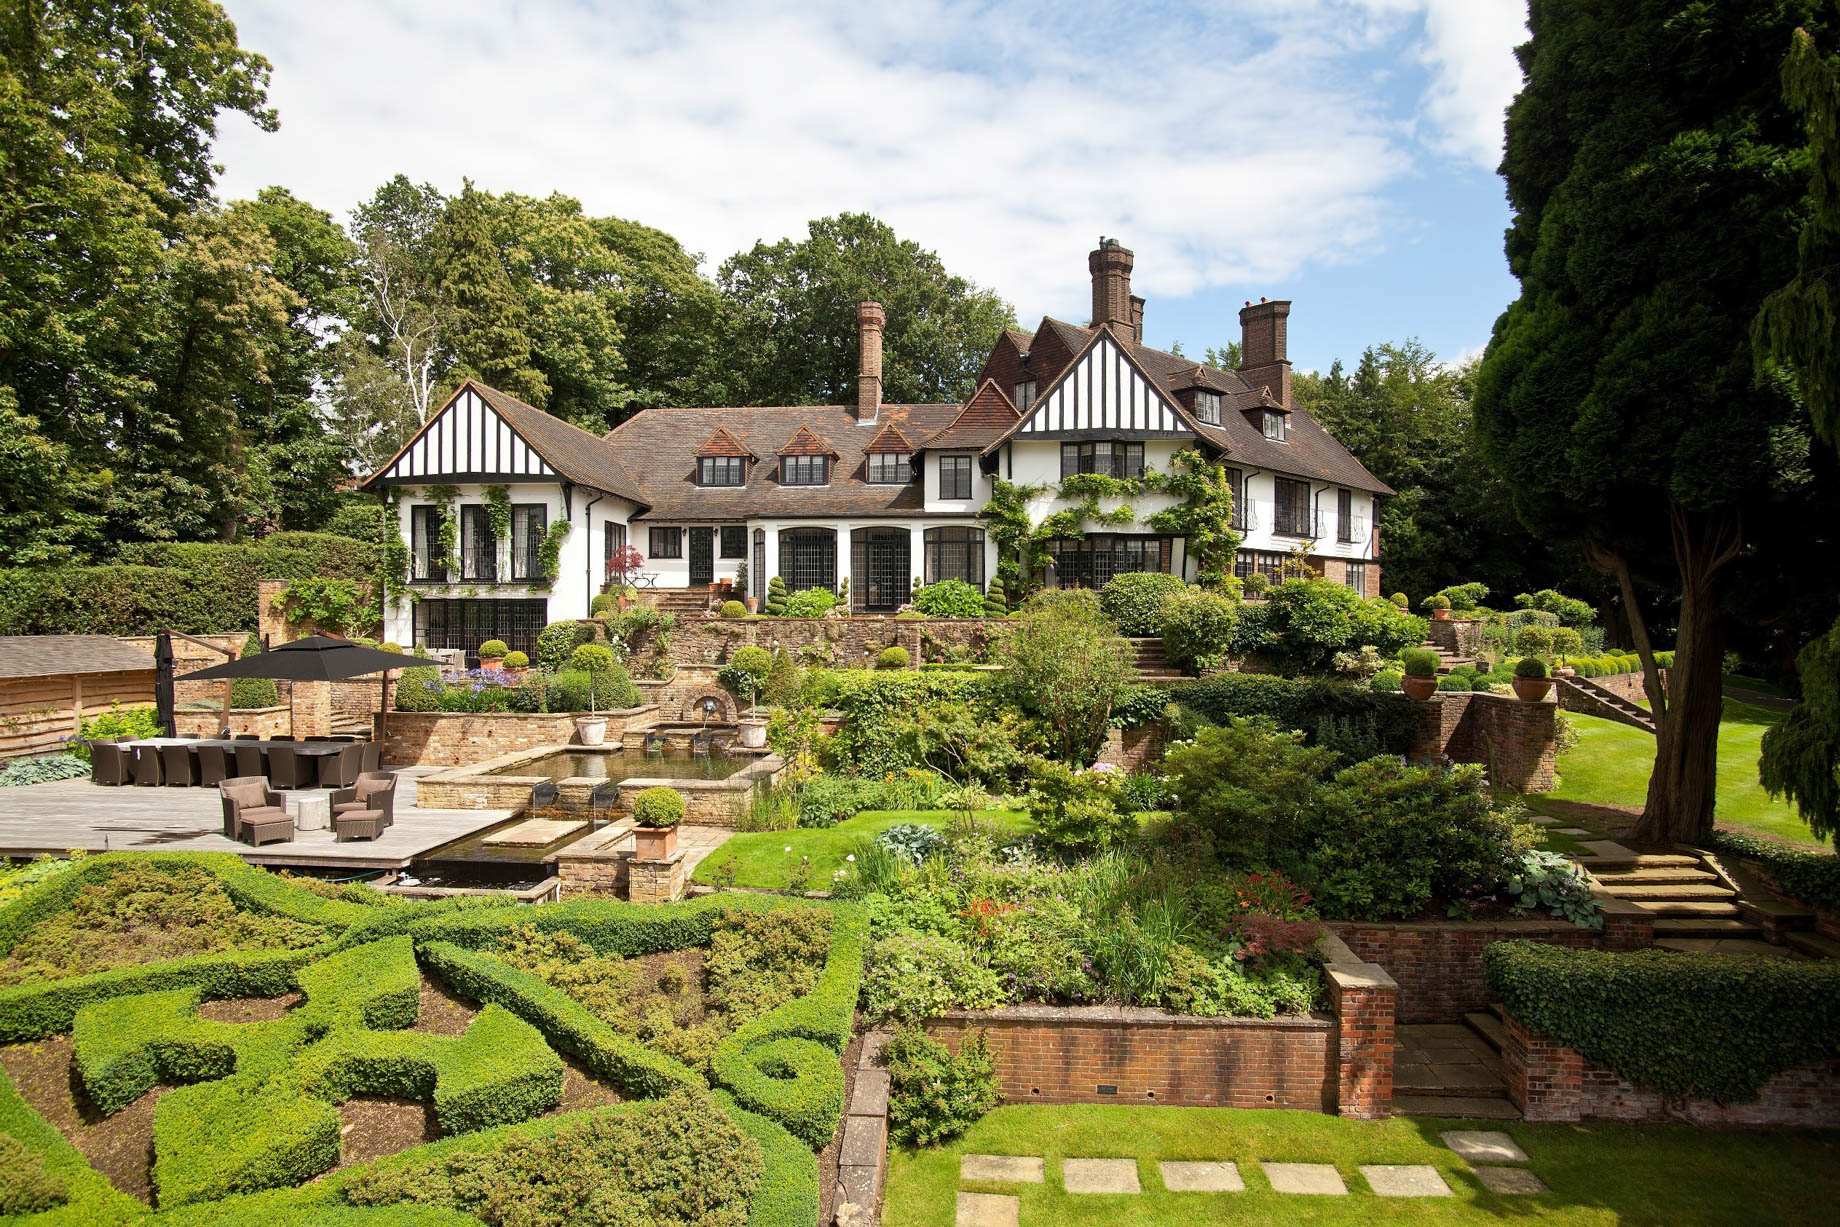 John Lennon's Former Kenwood Home - Weybridge, Surrey, England, UK